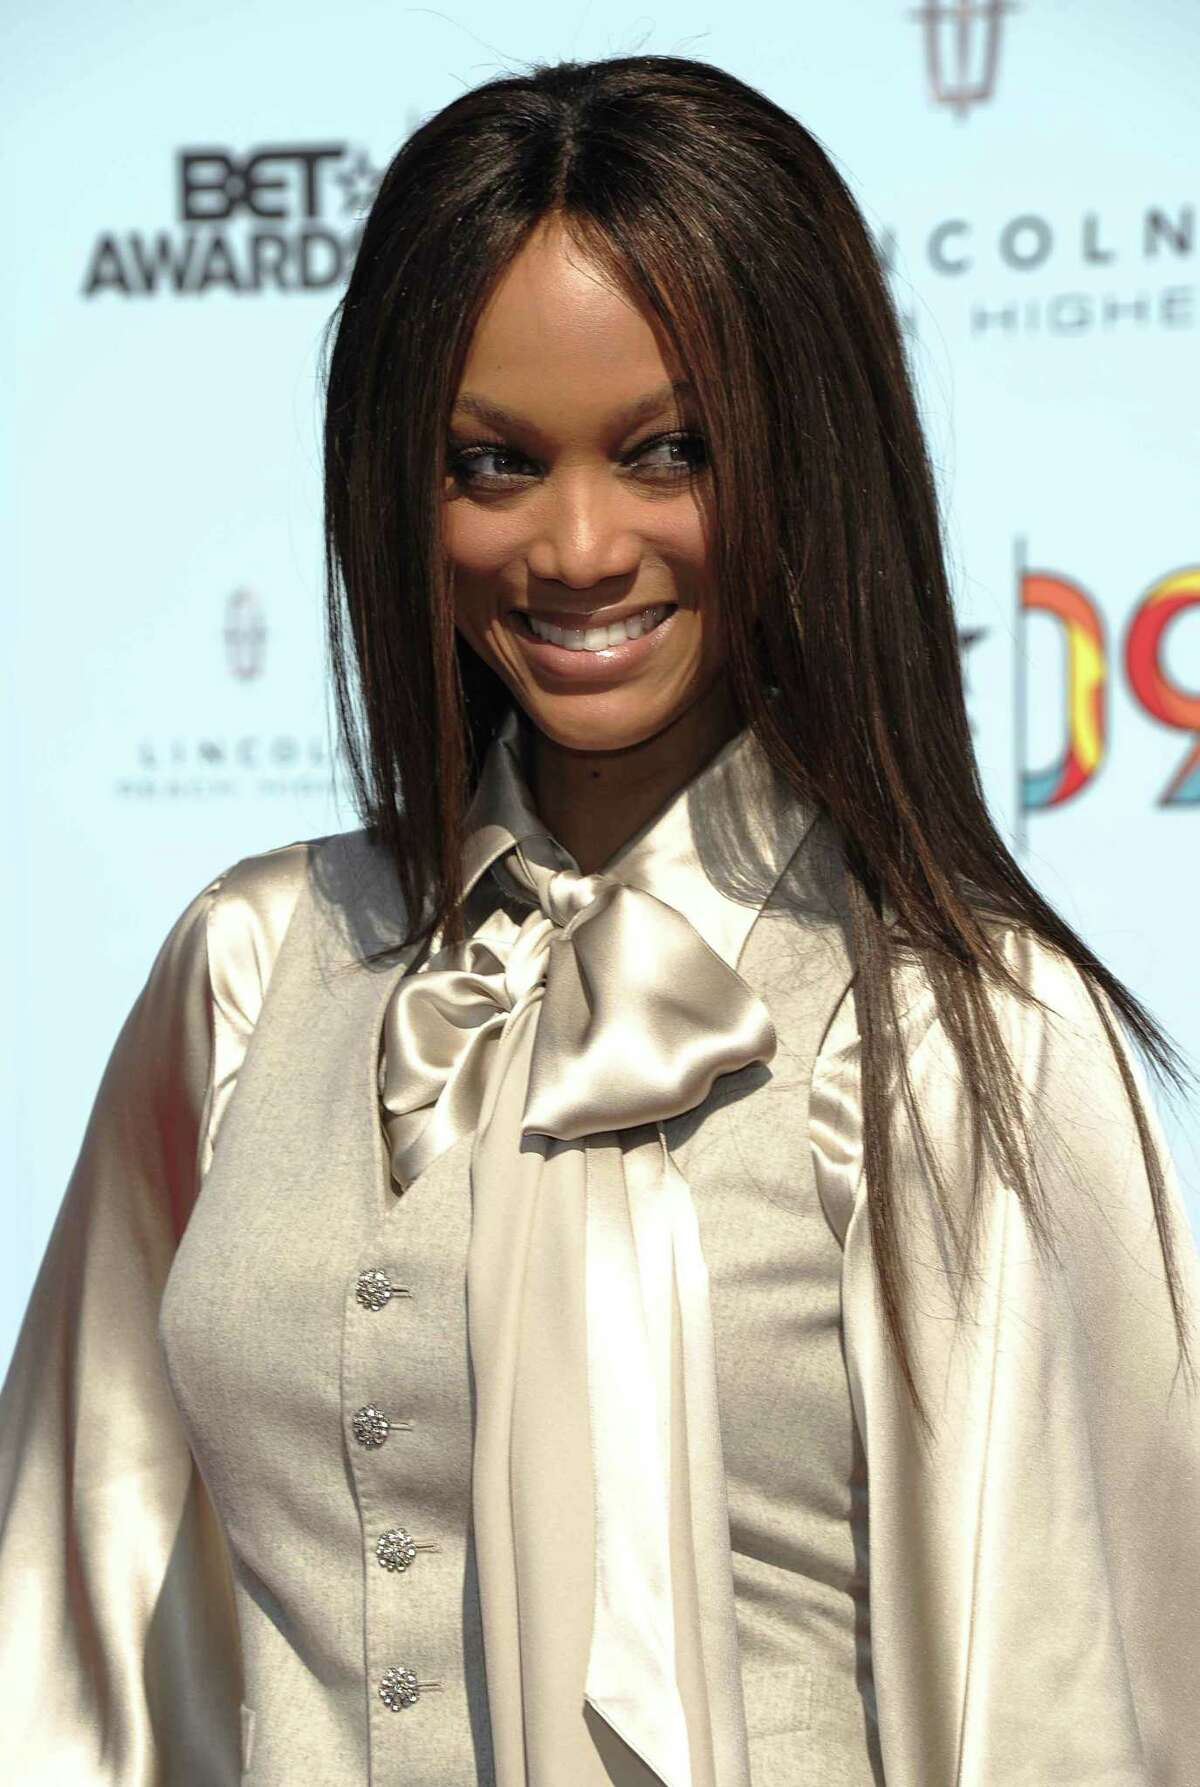 Tyra Banks arriving at the 9th Annual BET Awards in Los Angeles. The former model says the syndicated